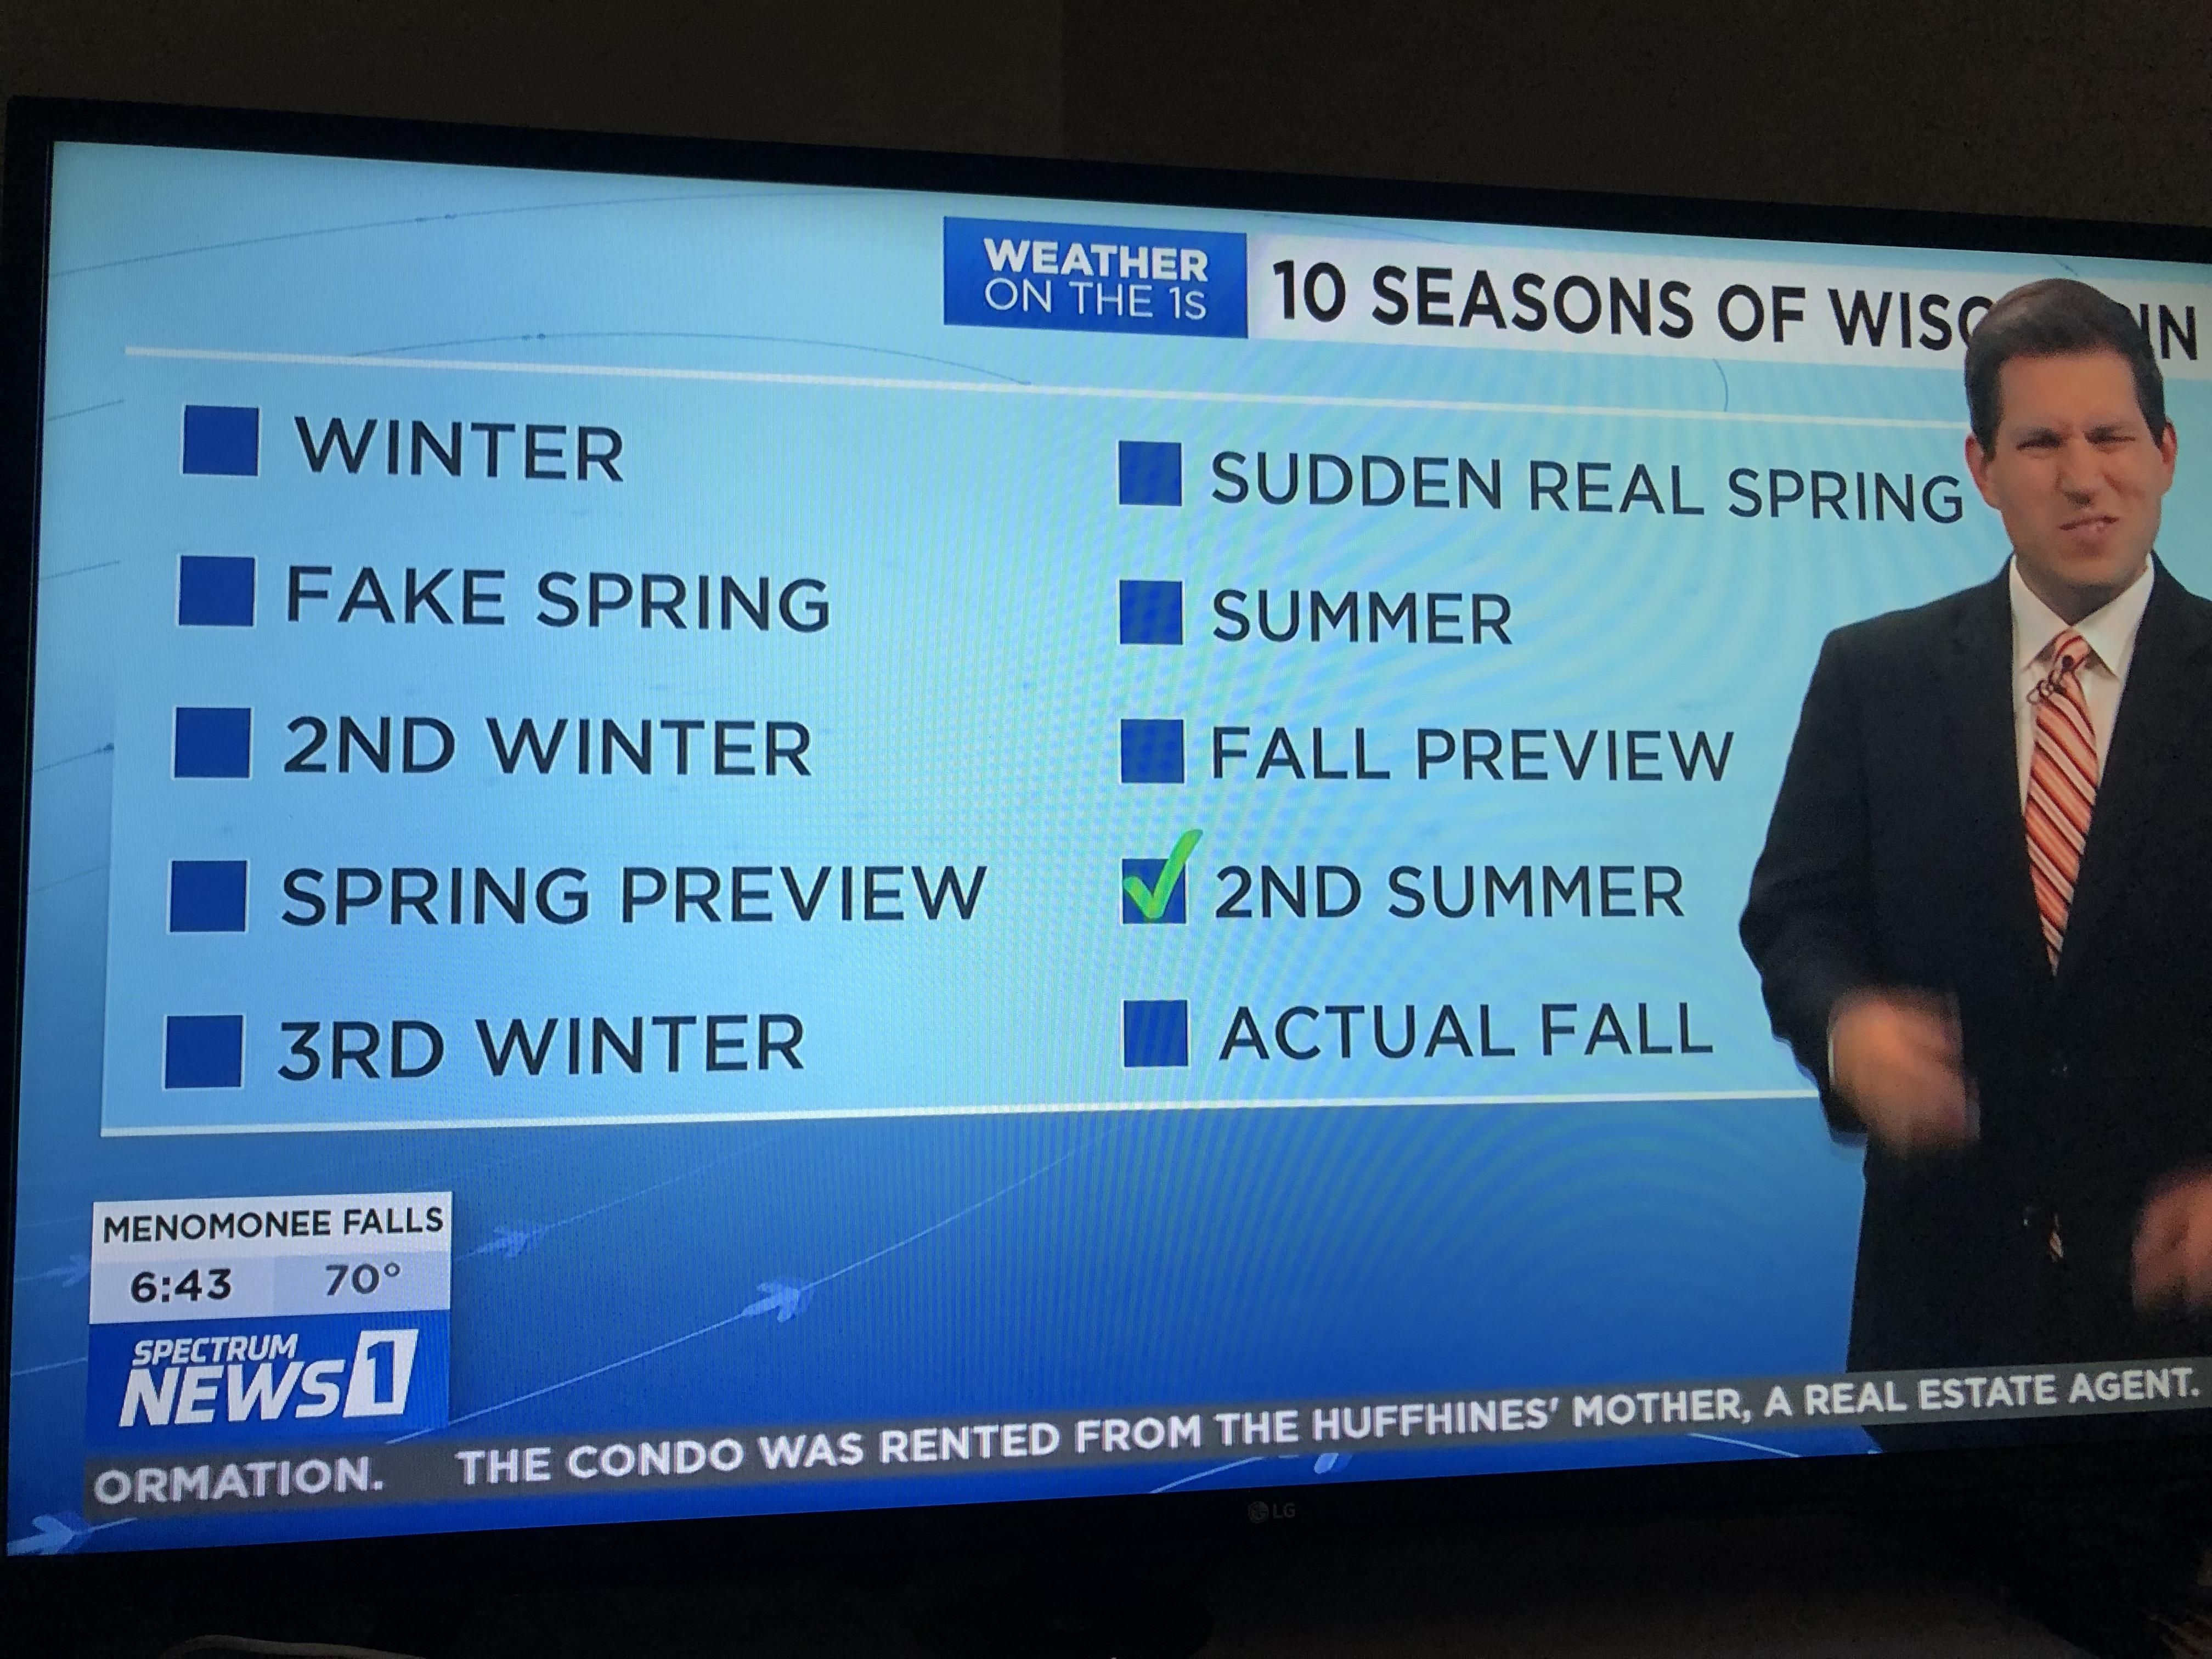 The 10 seasons of Wisconsin, according to our local news station